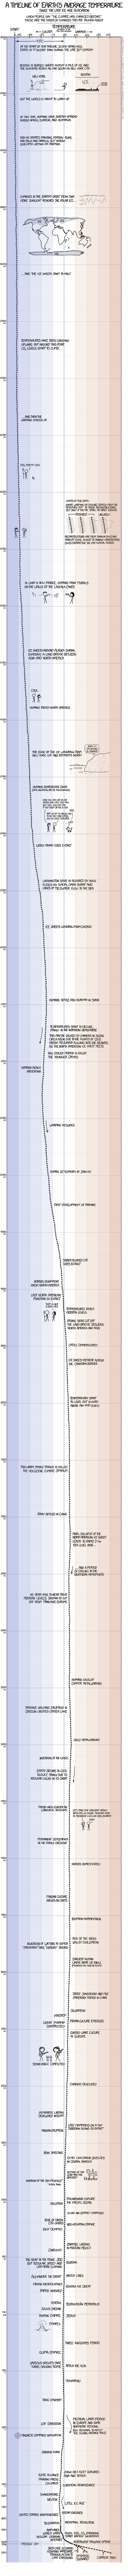 timeline earth average temprature since last ice age glaciation